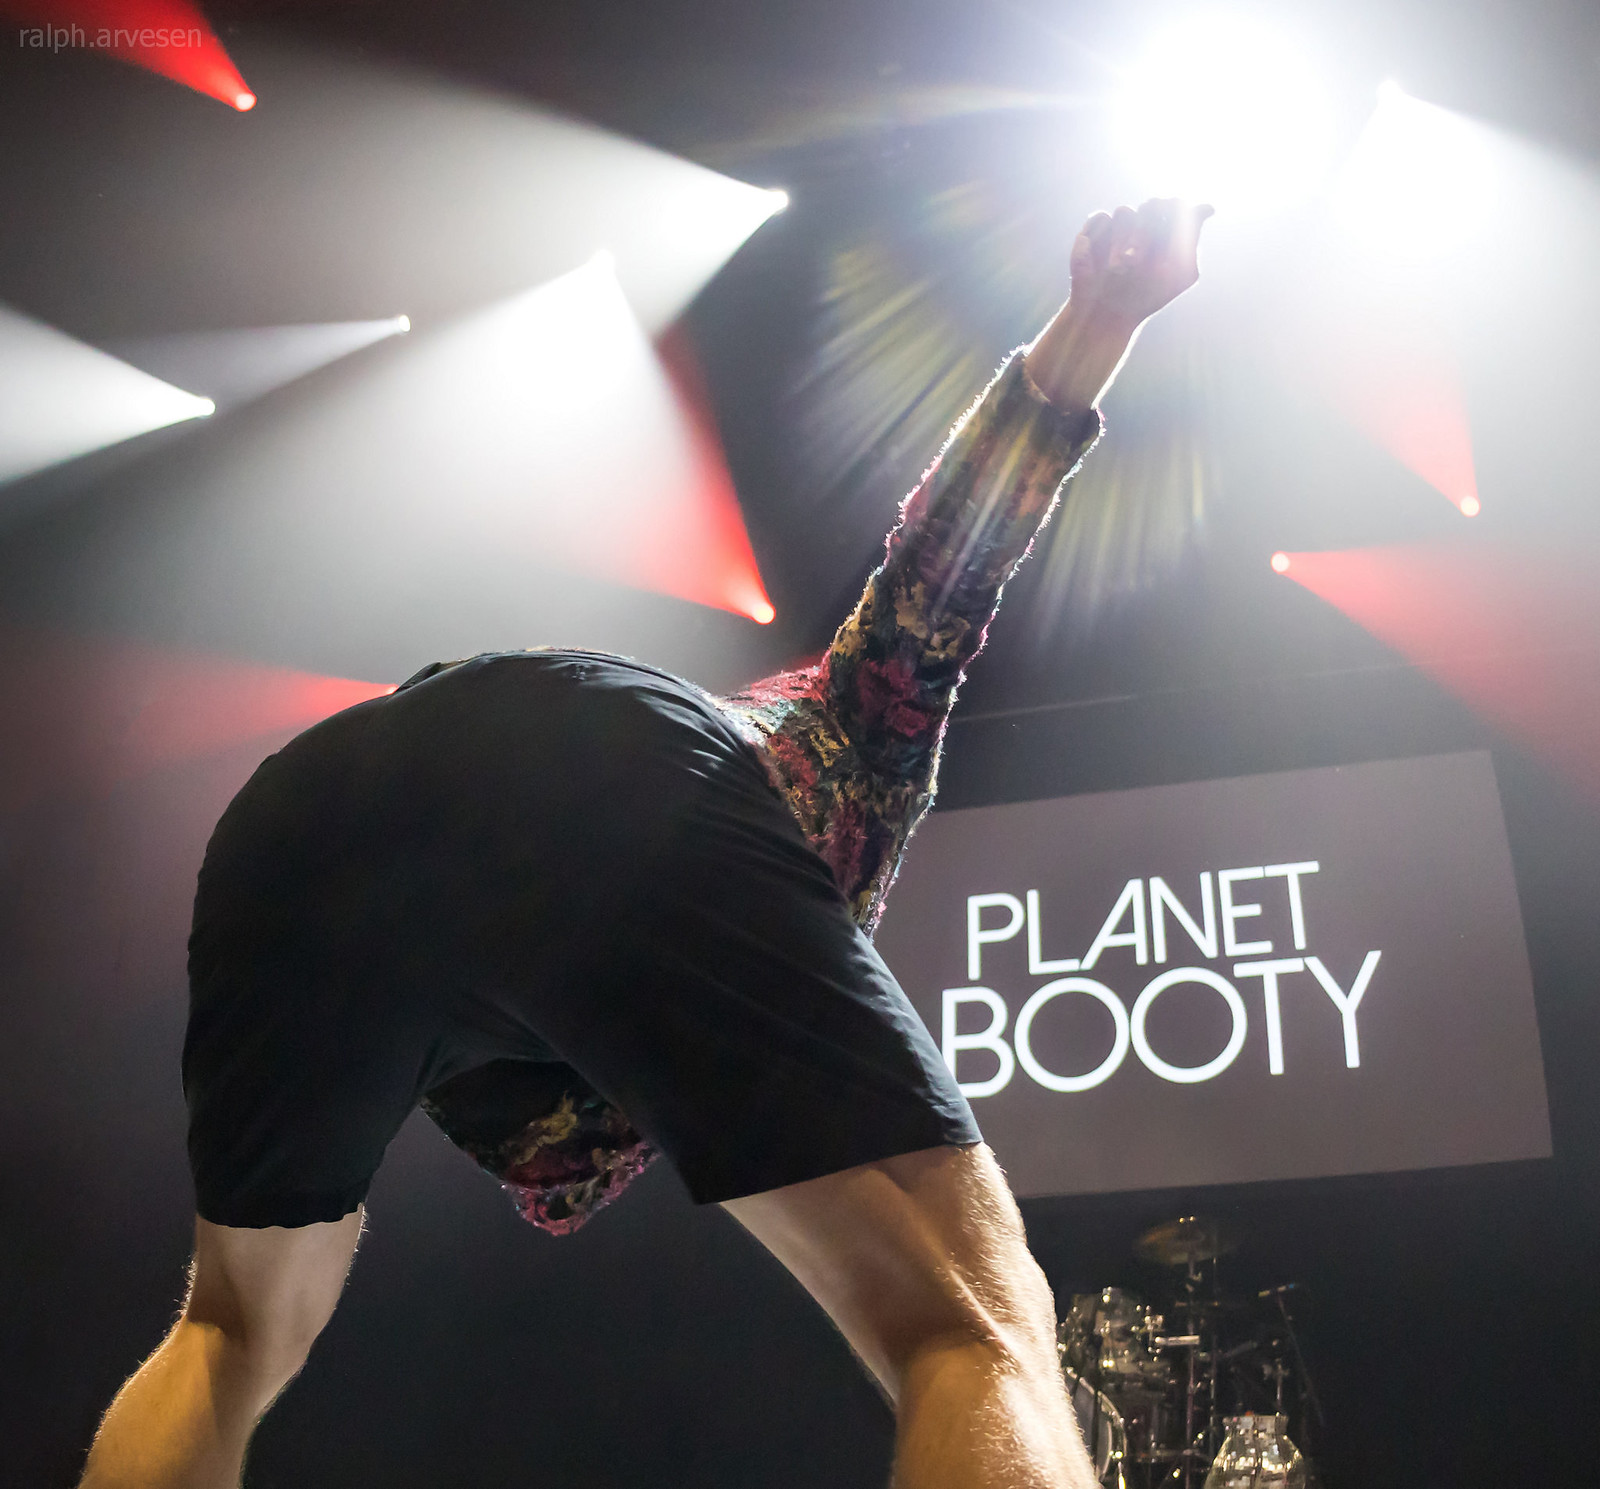 Planet Booty | Texas Review | Ralph Arvesen